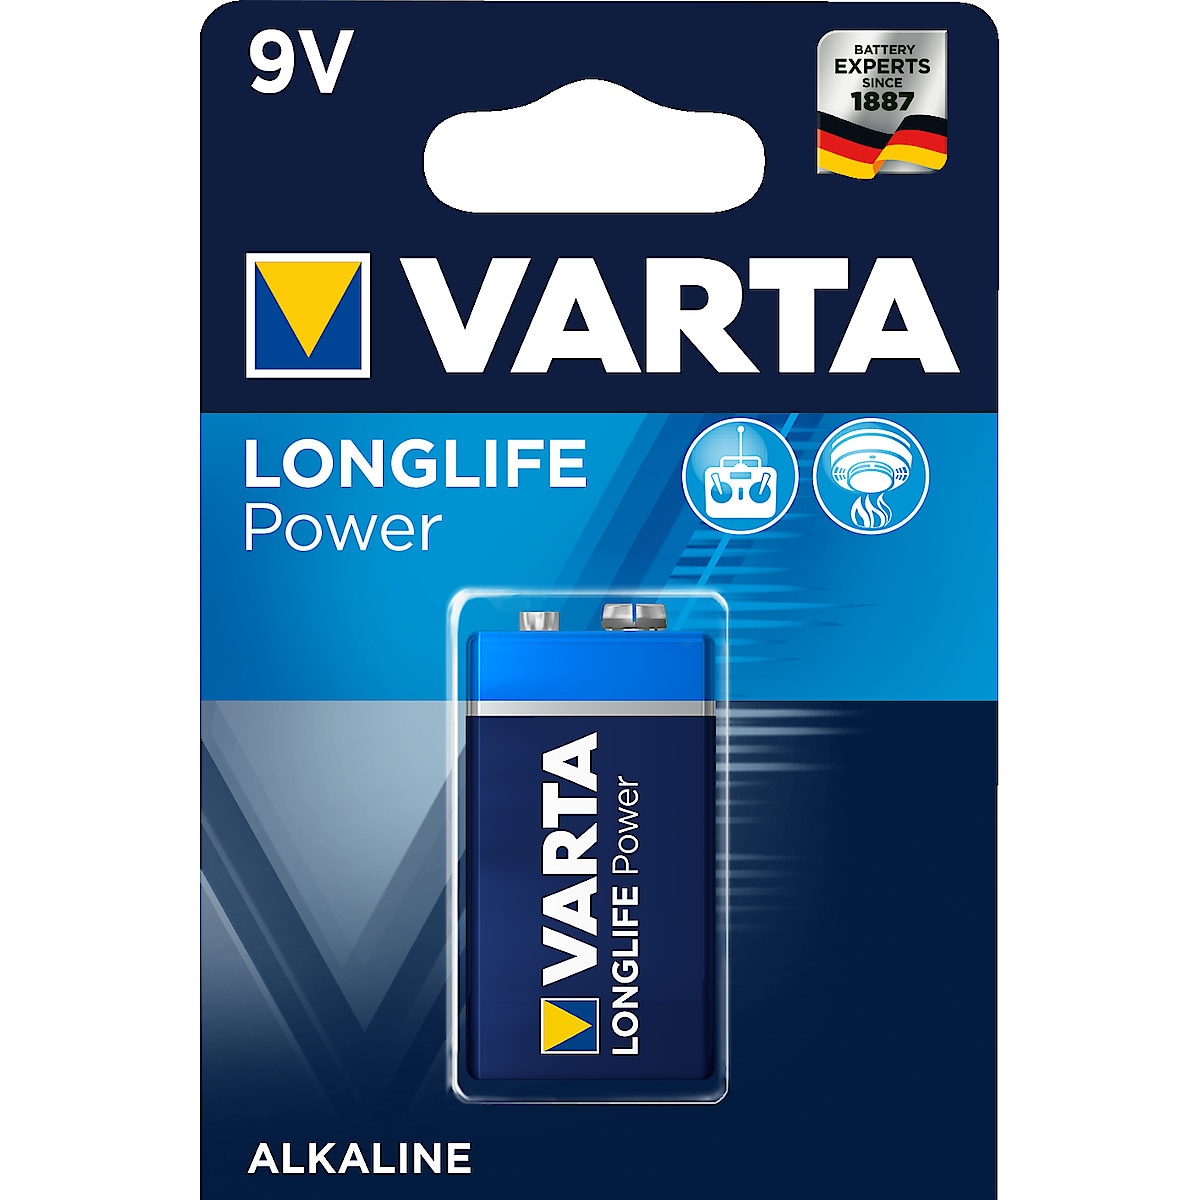 VARTA Longlife Power alkalisk batteri 9 V